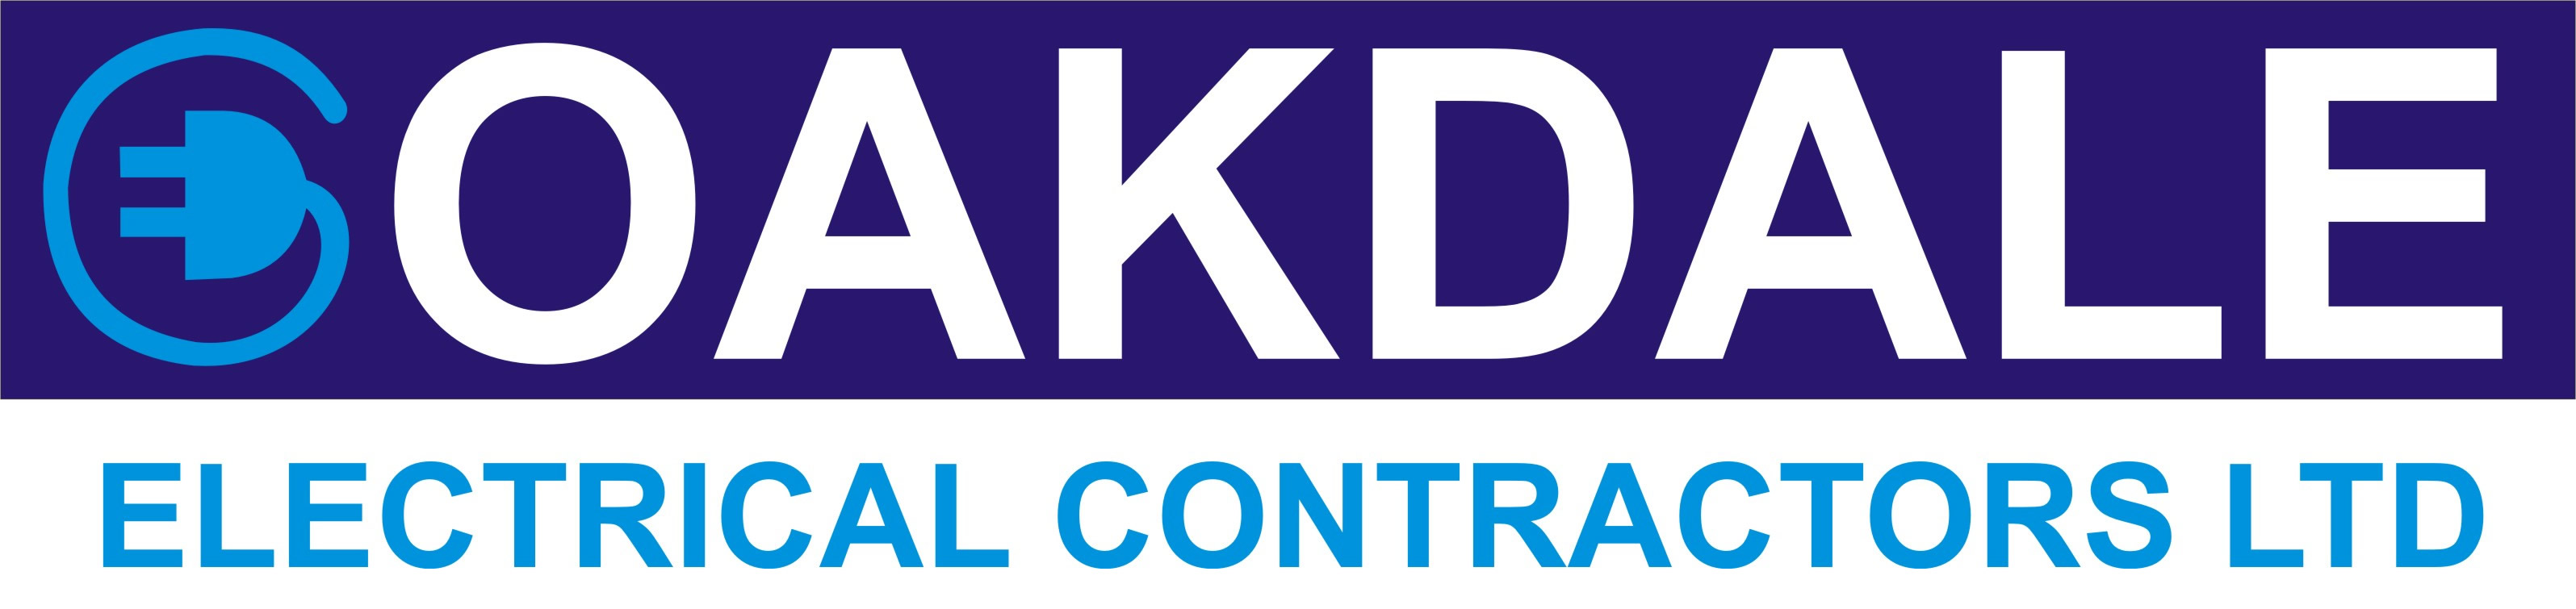 OAKDALE ELECTRICAL